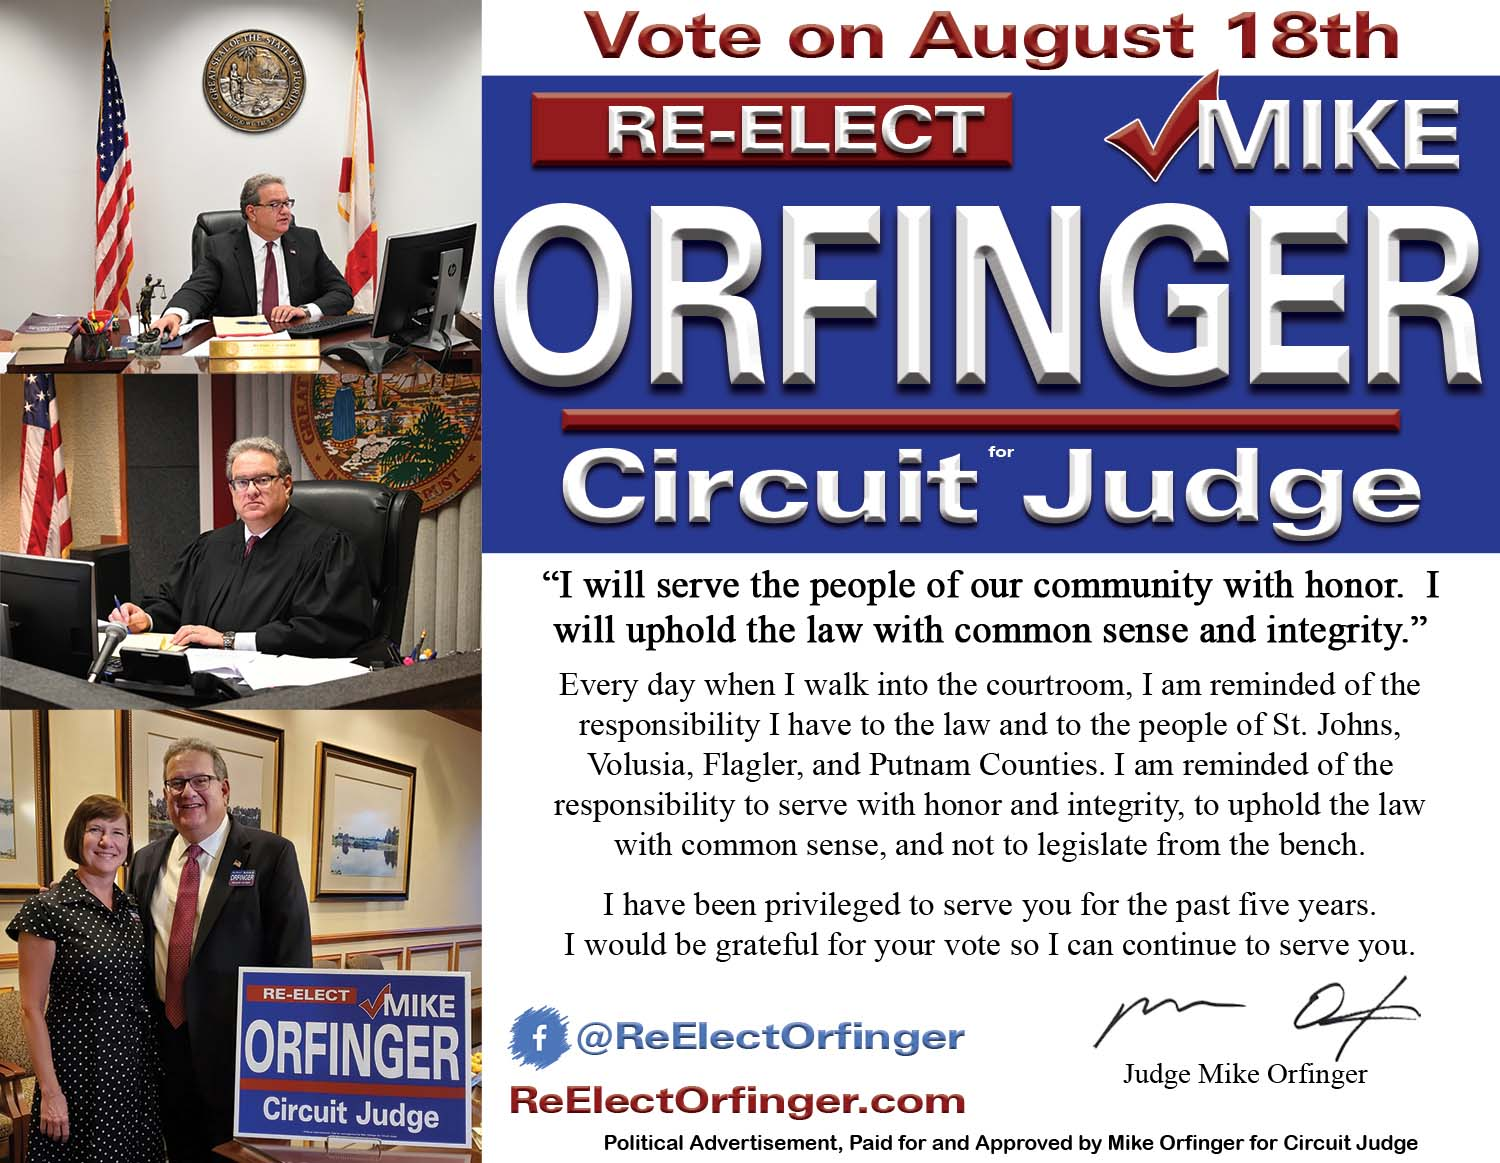 Re-elect Mike Orfinger for circuit judge